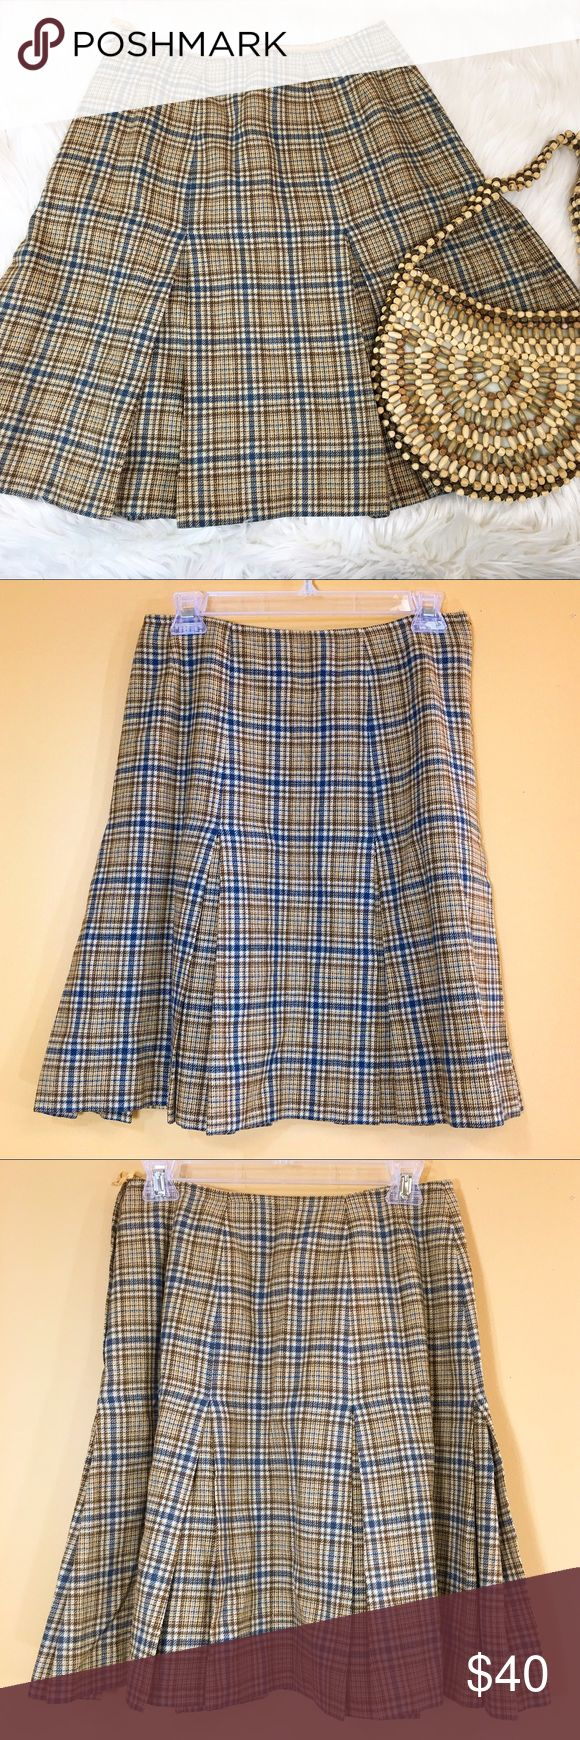 "Vintage 70's Plaid Pendleton Schoolgirl Skirt Oh my word, this skirt is adorable! Vintage 1970's yellowish tan and blue plaid Pendleton mini skirt with pleats. Skirt is fully lined.  Very Lolita schoolgirl!  Brand: Pendleton Size: 14 Made in the USA Material: 100% wool  Condition: good, pre-owned vintage.  Measurements (flat): Waist: 14"" Hips: 18"" Bottom hem: 50.5"" Length: 21"" Pendleton Skirts A-Line or Full"